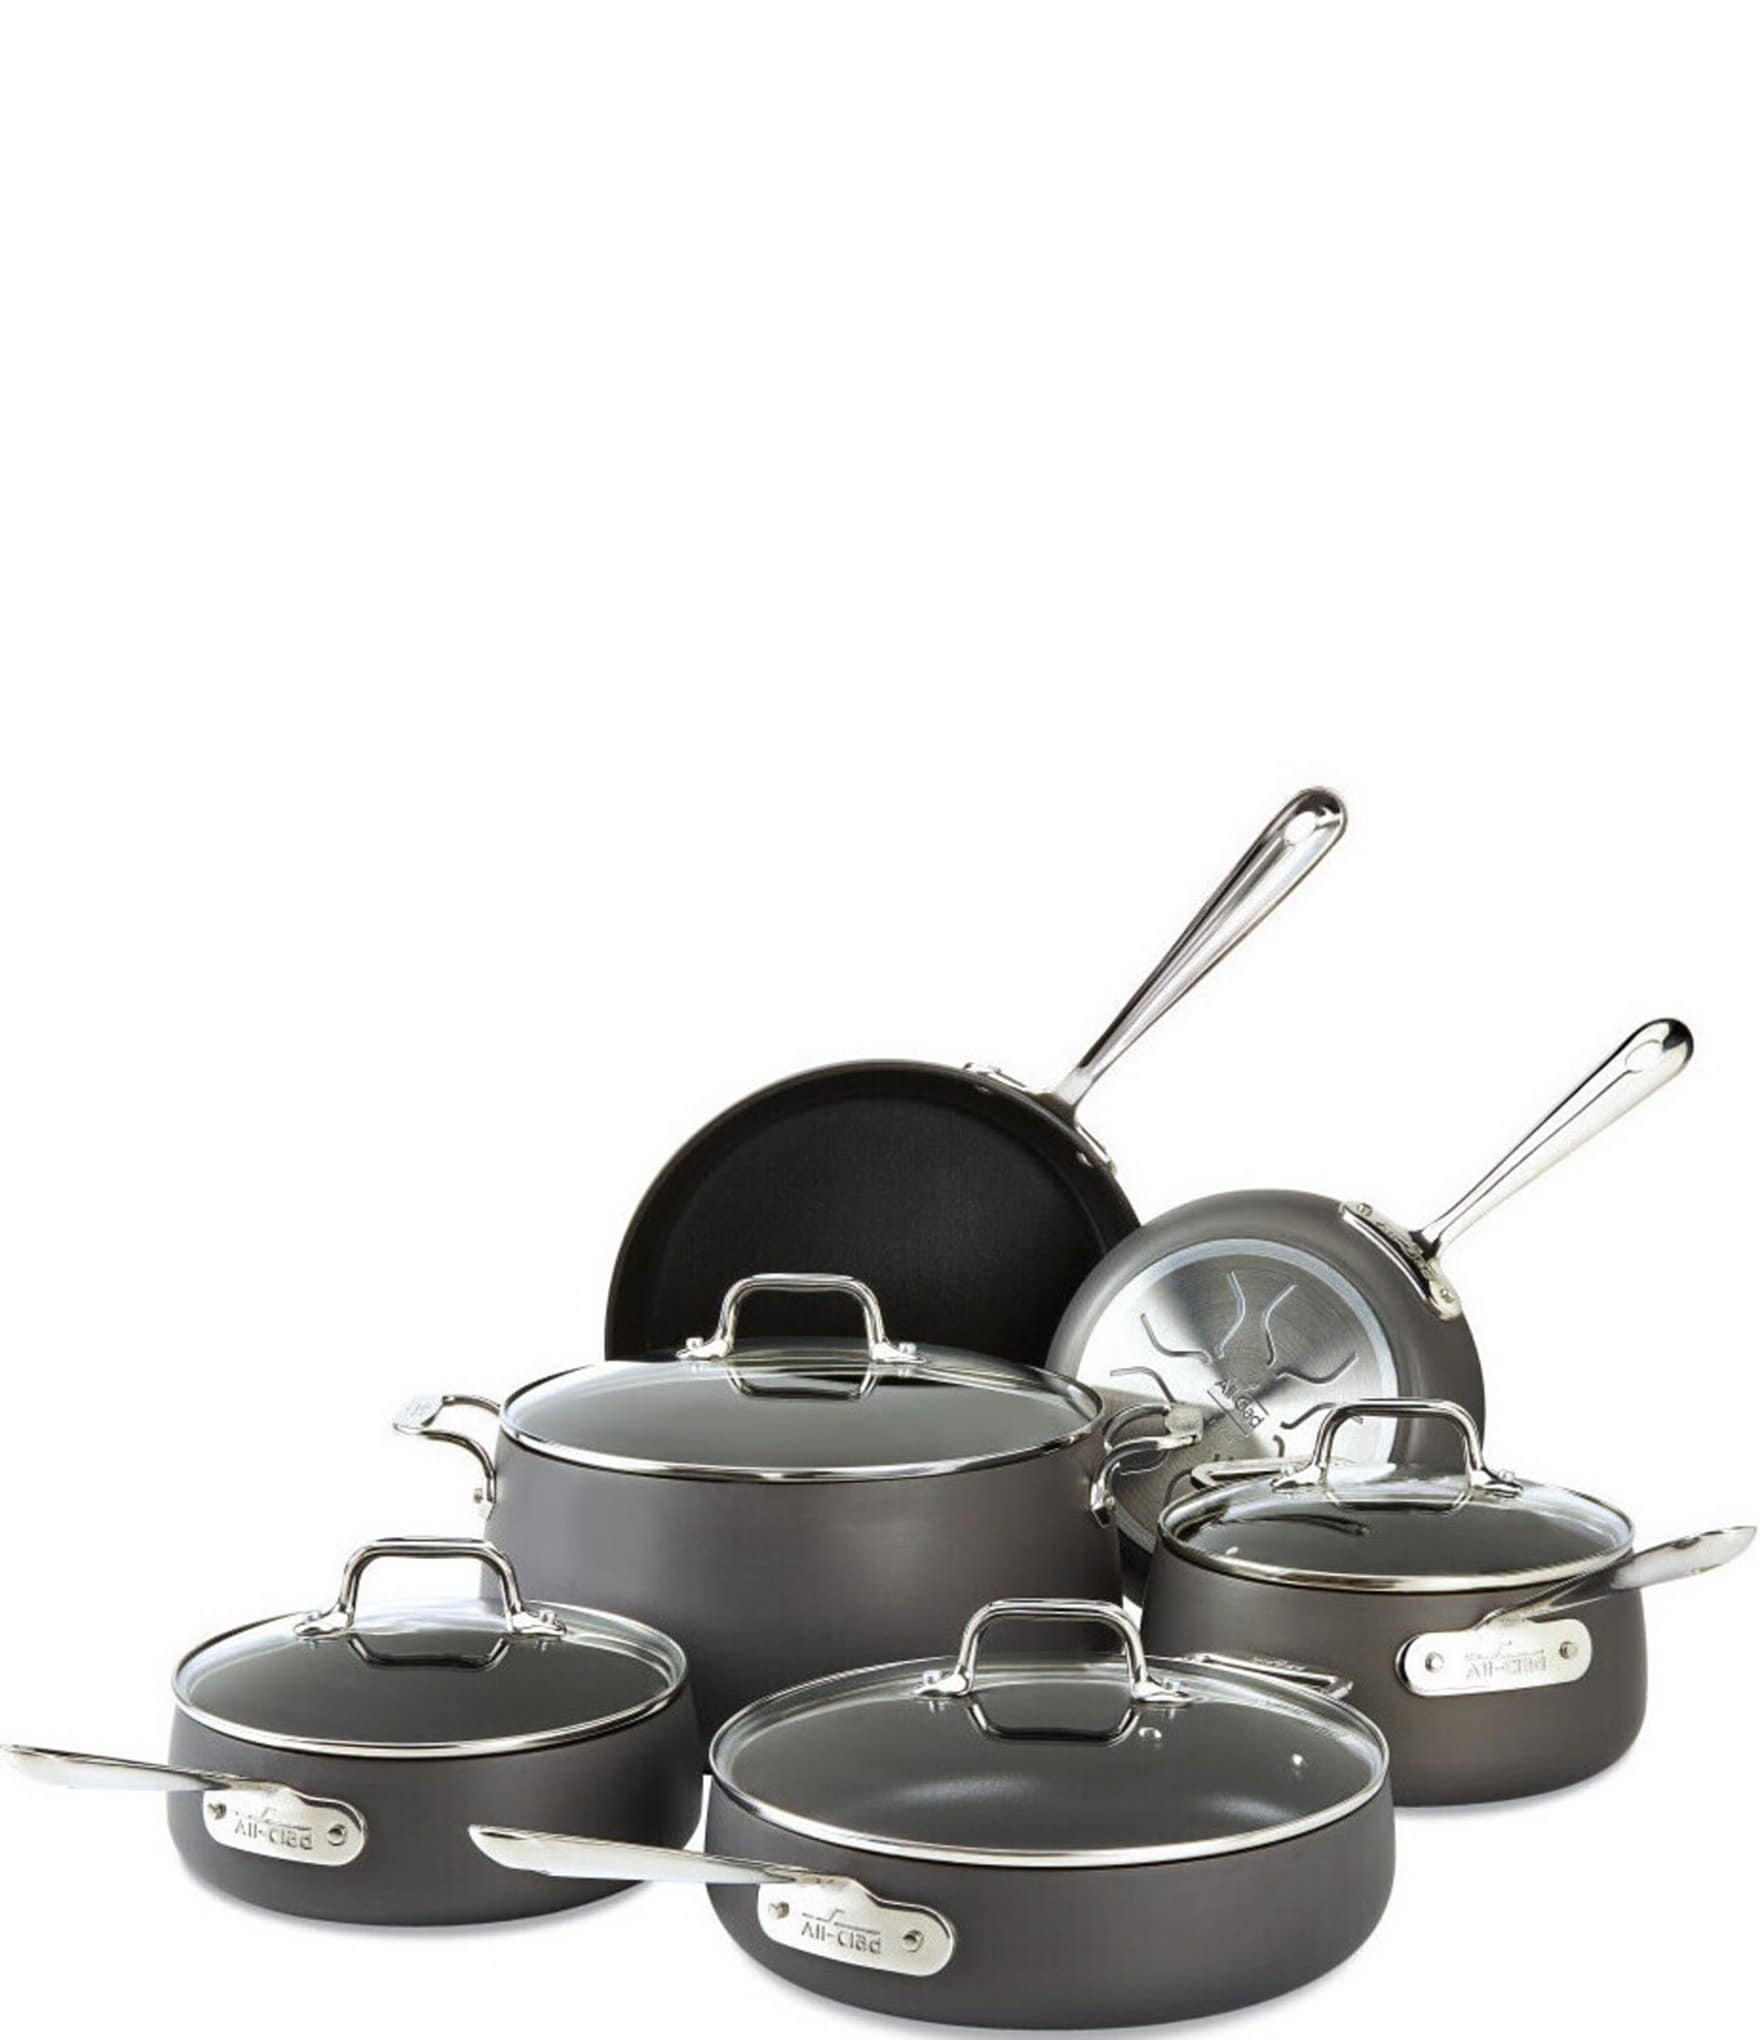 All Clad Ha1 Hard Anodized Nonstick 10 Piece Cookware Set